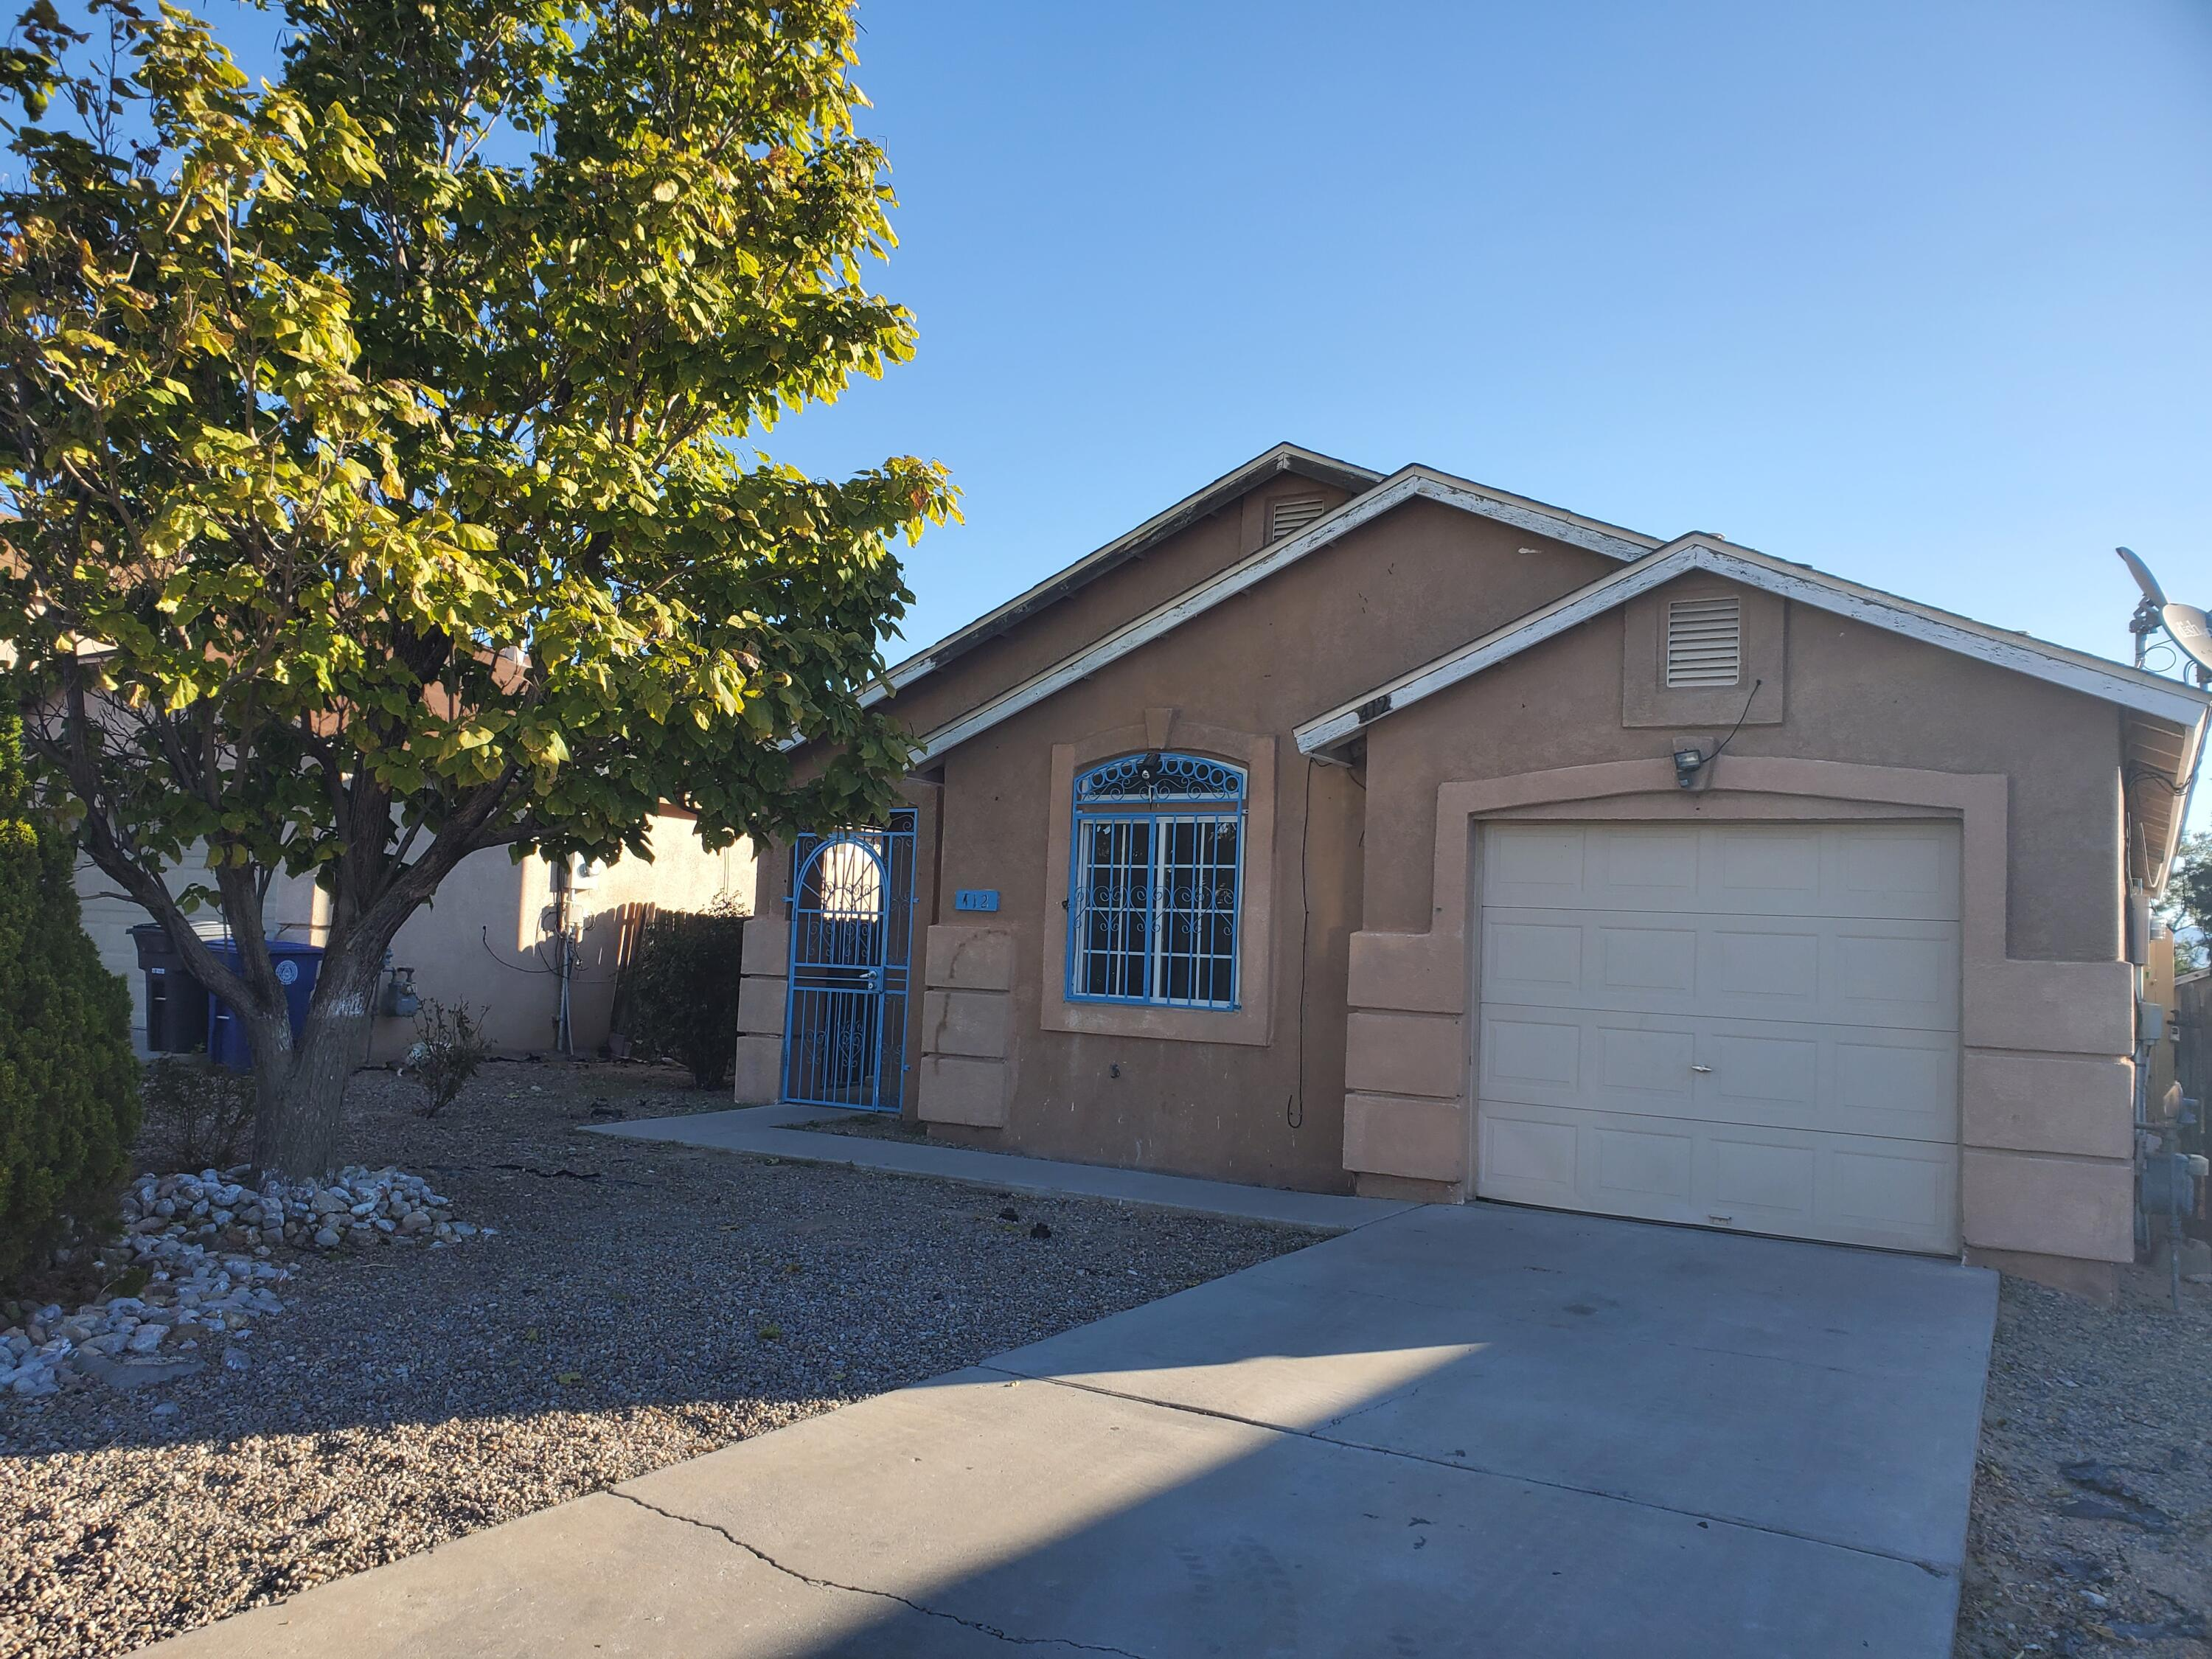 Super cute 3 bedroom 2 bath home with vaulted ceilings. Gas fireplace for those cool winter days. Backyard has plenty of room to create your perfect oasis--a doggie door for your small pets. Schedule your showing today.